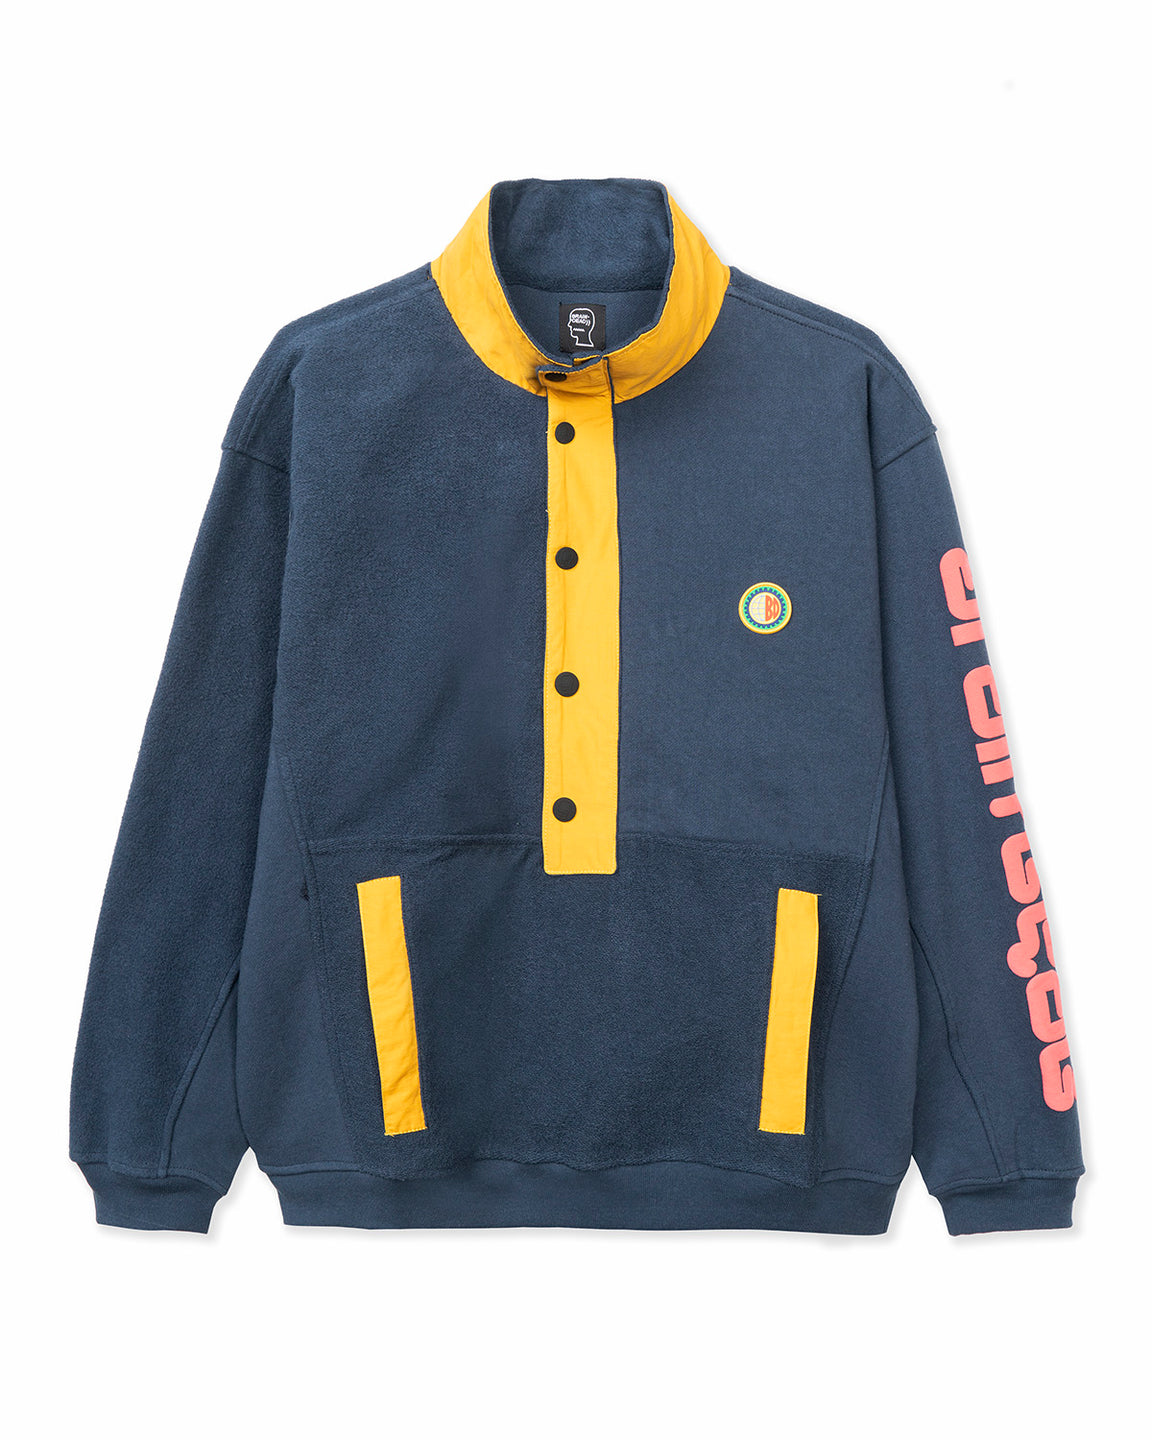 Global Works Snap Mock Neck Pullover - Navy